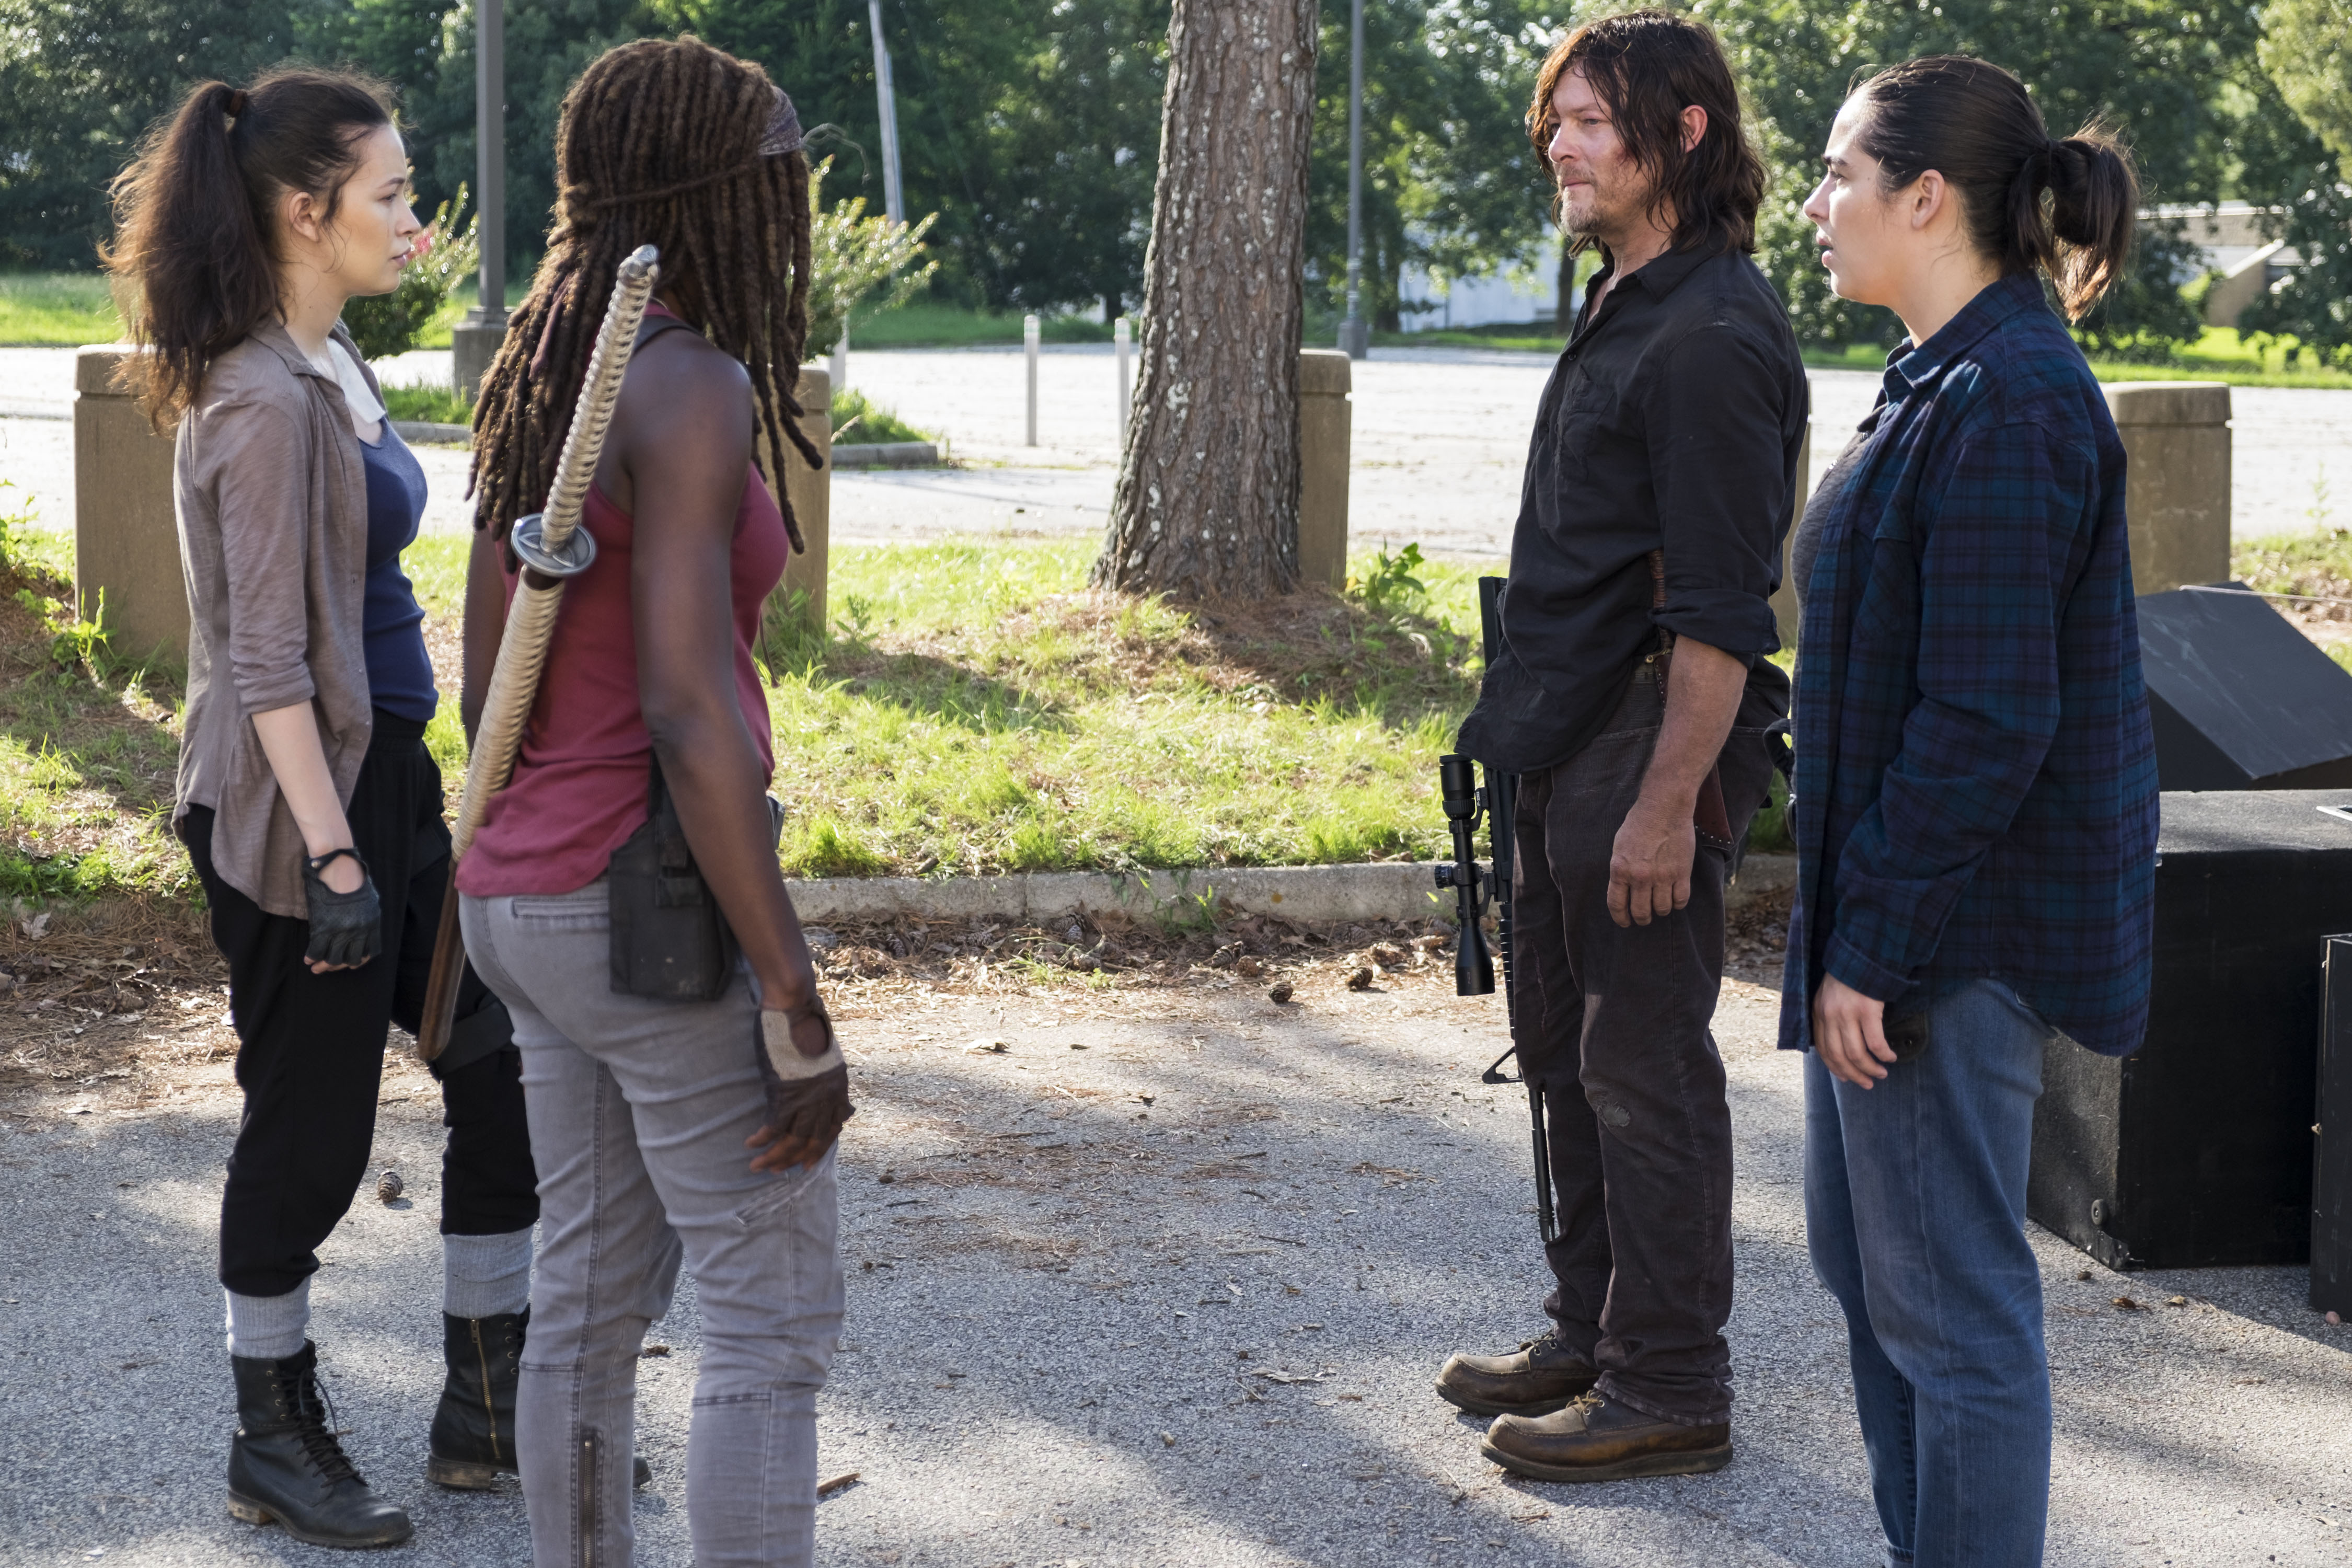 Norman Reedus as Daryl Dixon, Alanna Masterson as Tara Chambler, Christian Serratos as Rosita Espinosa, Danai Gurira as Michonne - The Walking Dead _ Season 8, Episode 6 - Photo Credit: Gene Page/AMC